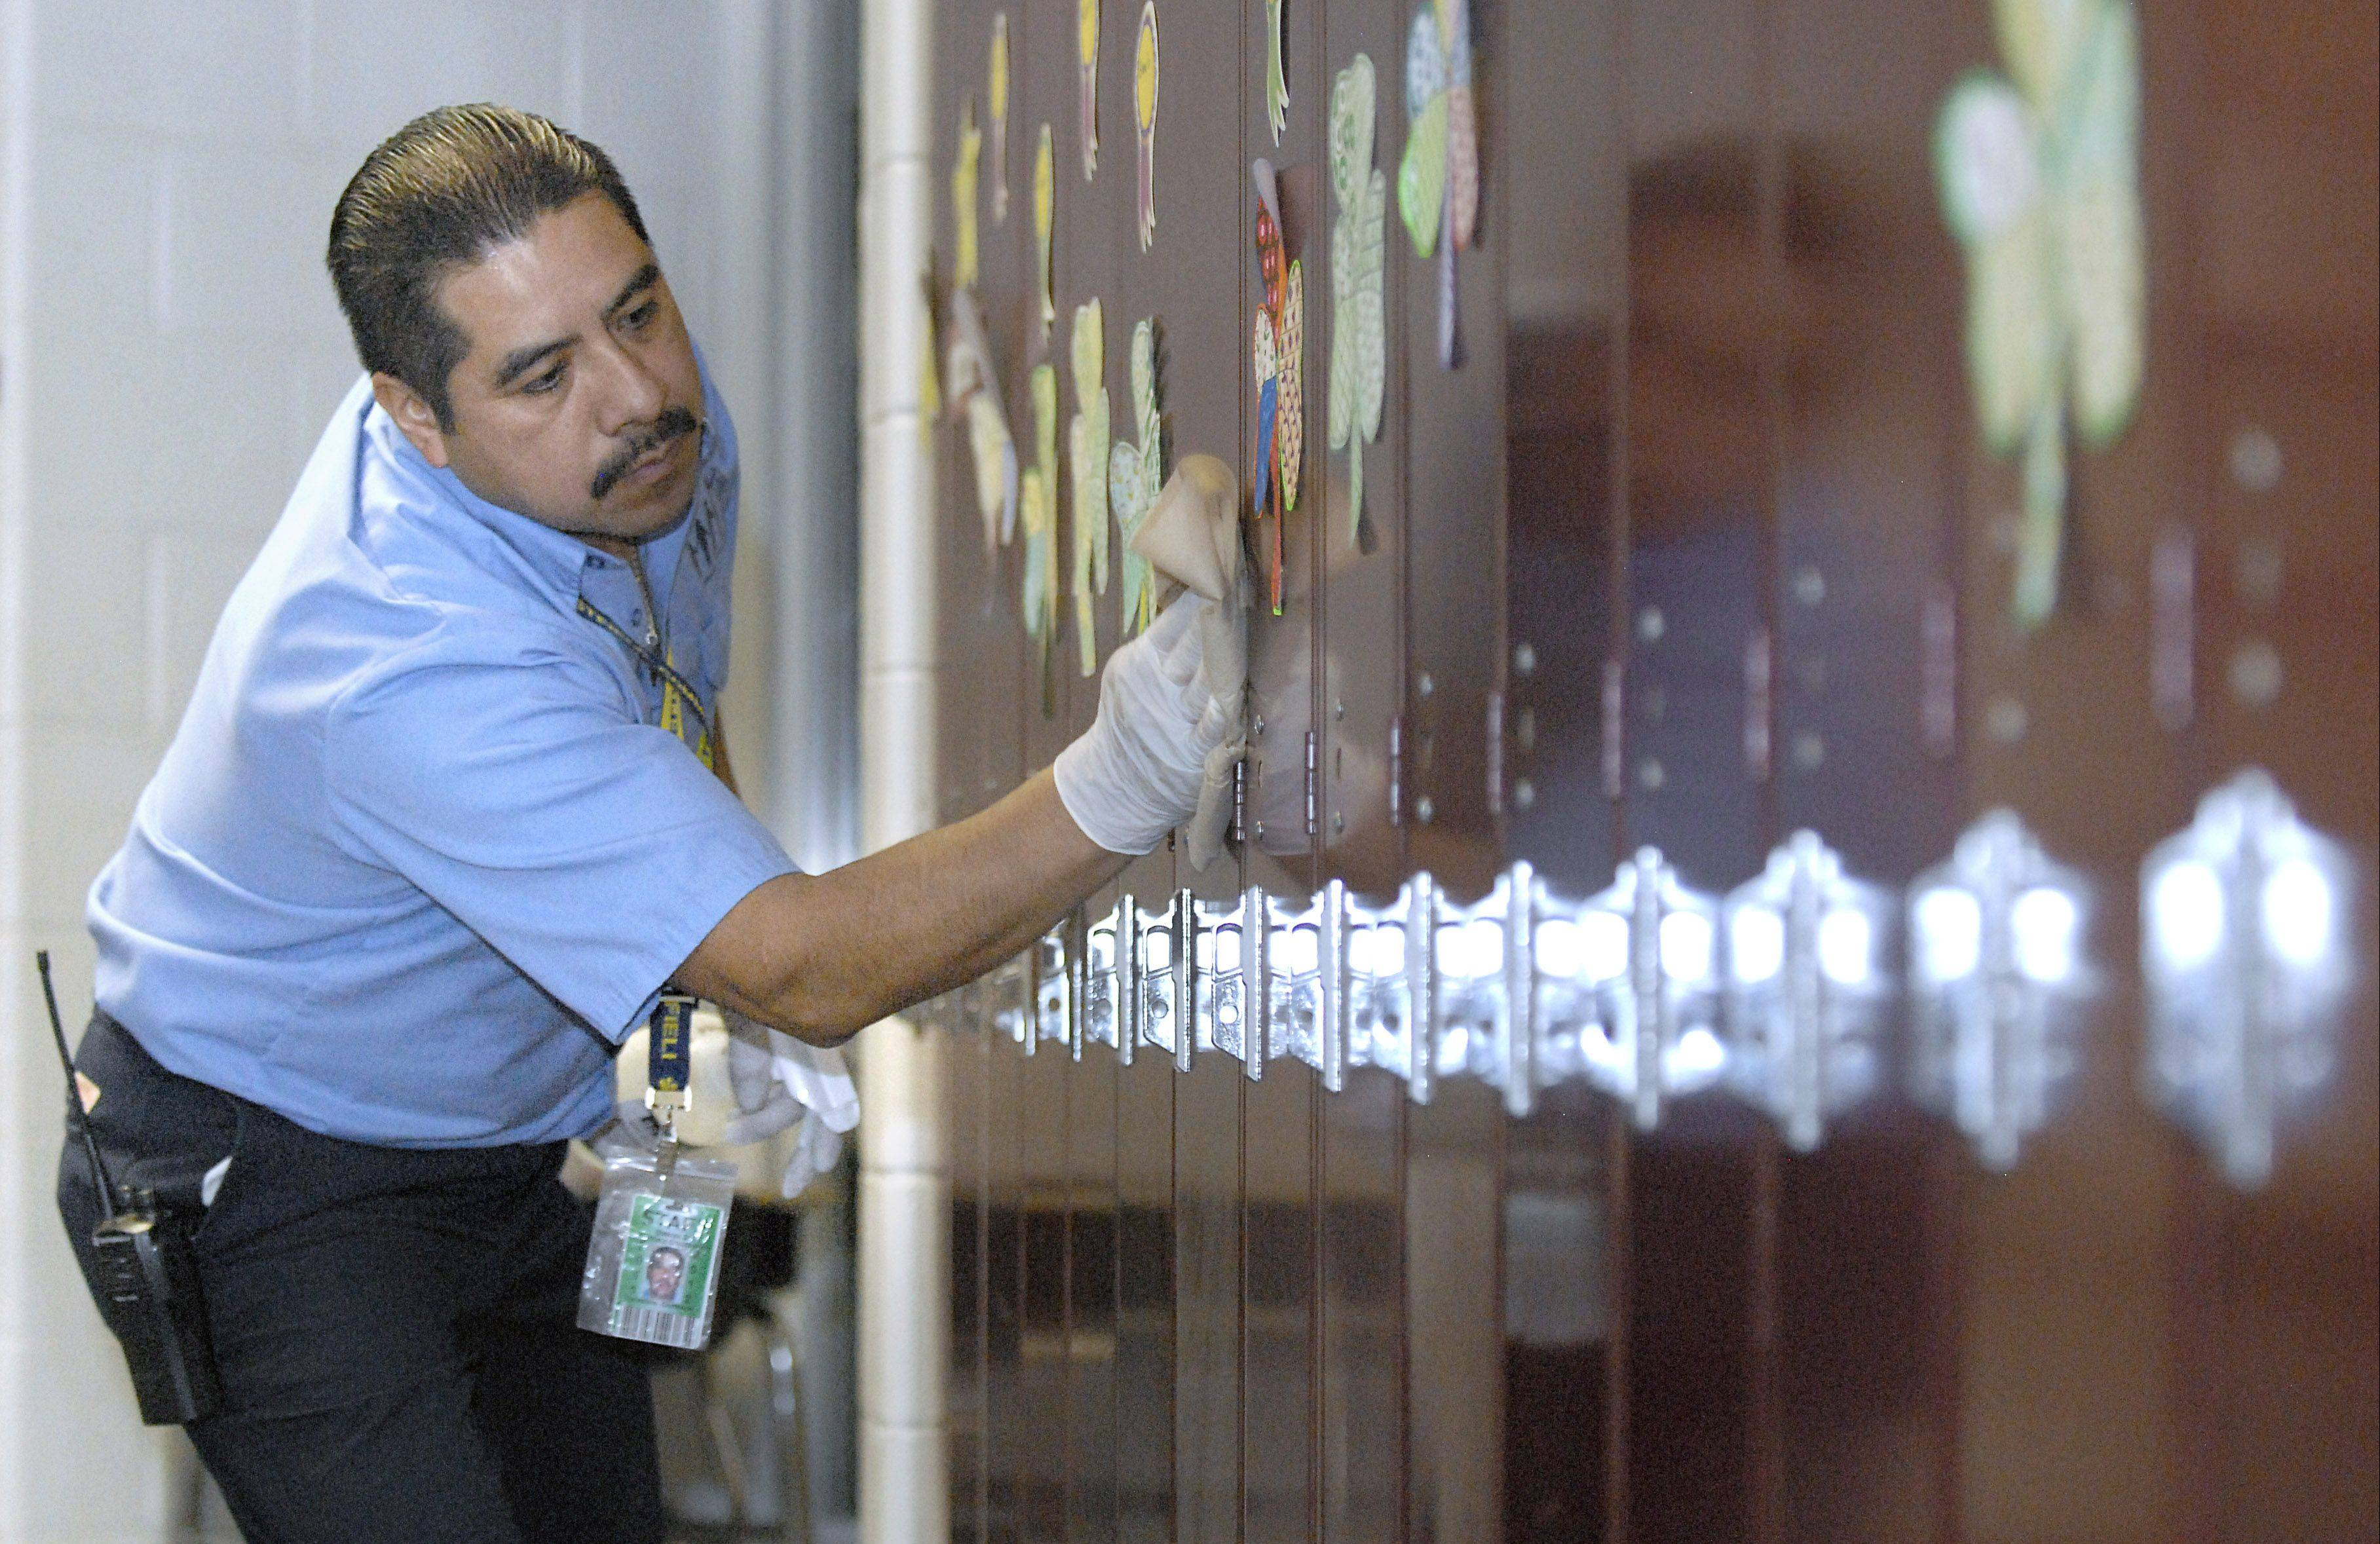 Head custodian Teles Contreras disinfects locker surfaces and handles Friday at Westfield Community School in Algonquin.